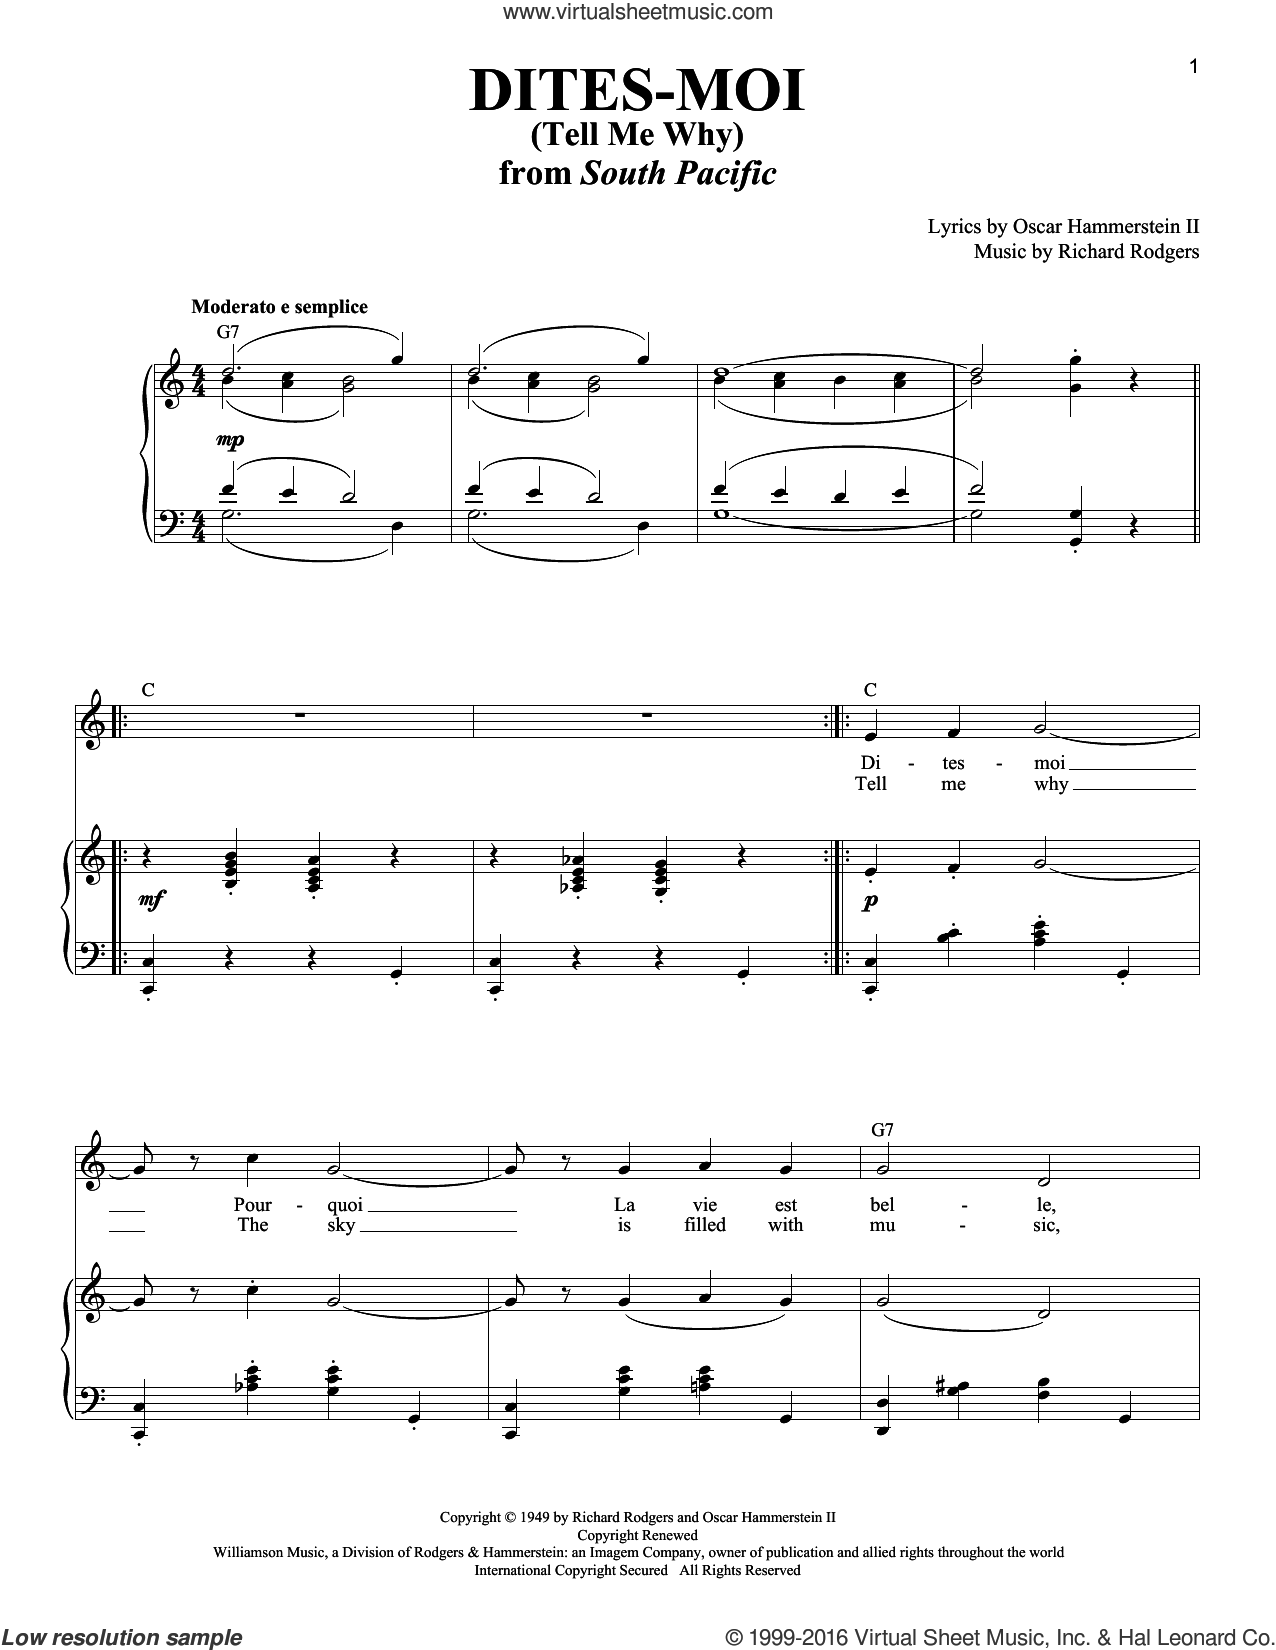 Dites-Moi (Tell Me Why) sheet music for voice and piano by Rodgers & Hammerstein, South Pacific (Musical), Oscar II Hammerstein and Richard Rodgers, intermediate skill level